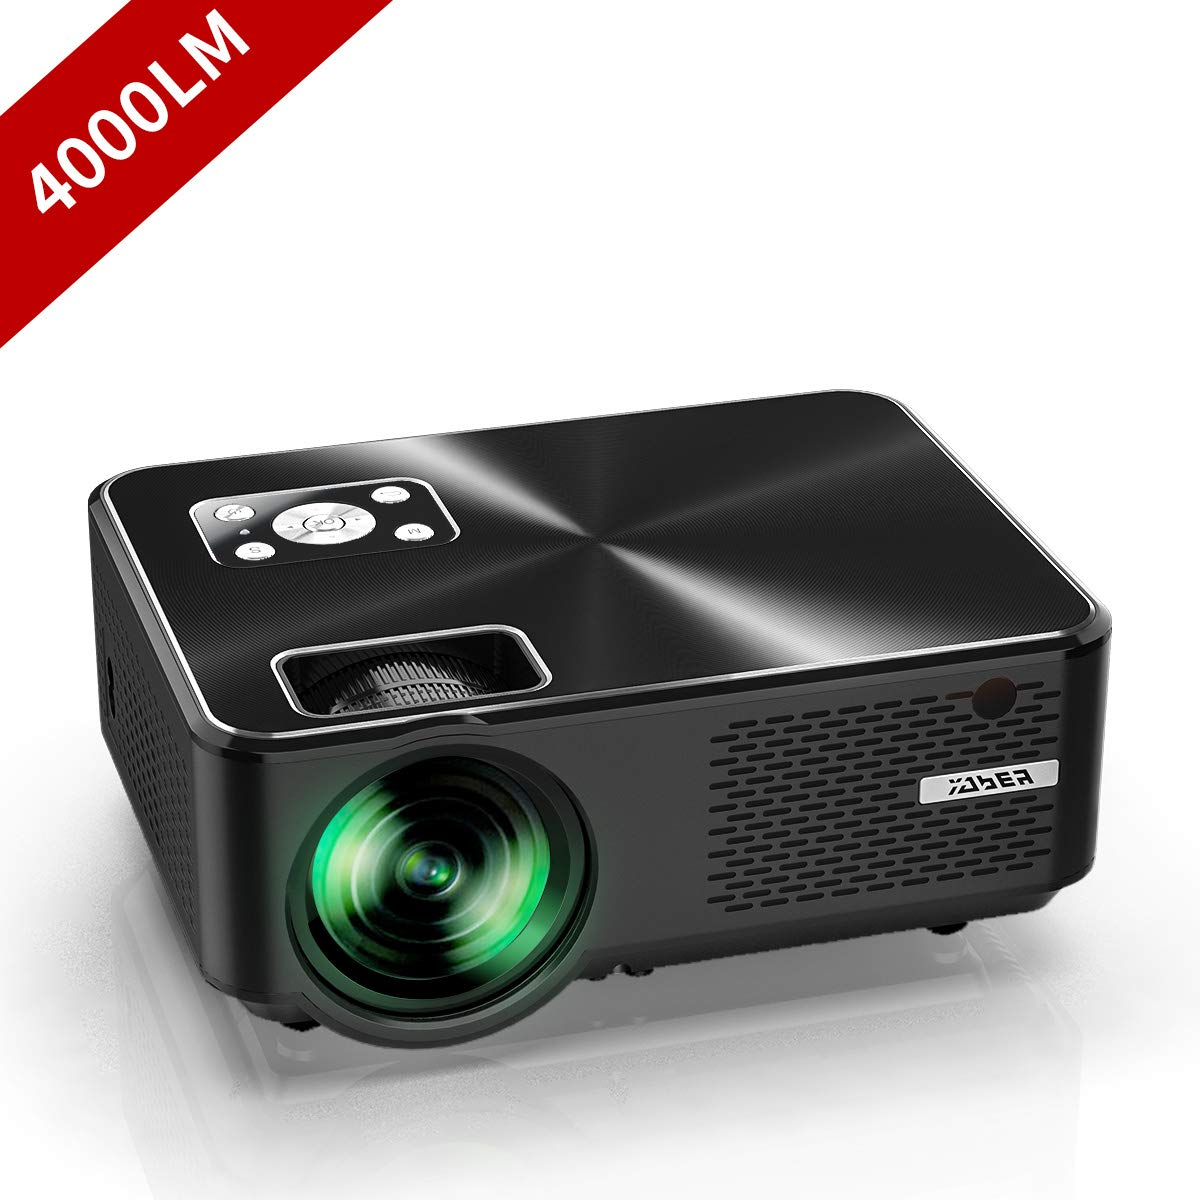 "YABER Portable Projector with 4000 Lumen Full HD 1080P 200"" Display Supported, LCD LED Home & Outdoor Projector Compatible with Fire TV Stick, Smartphone, HDMI,VGA,AV and USB"